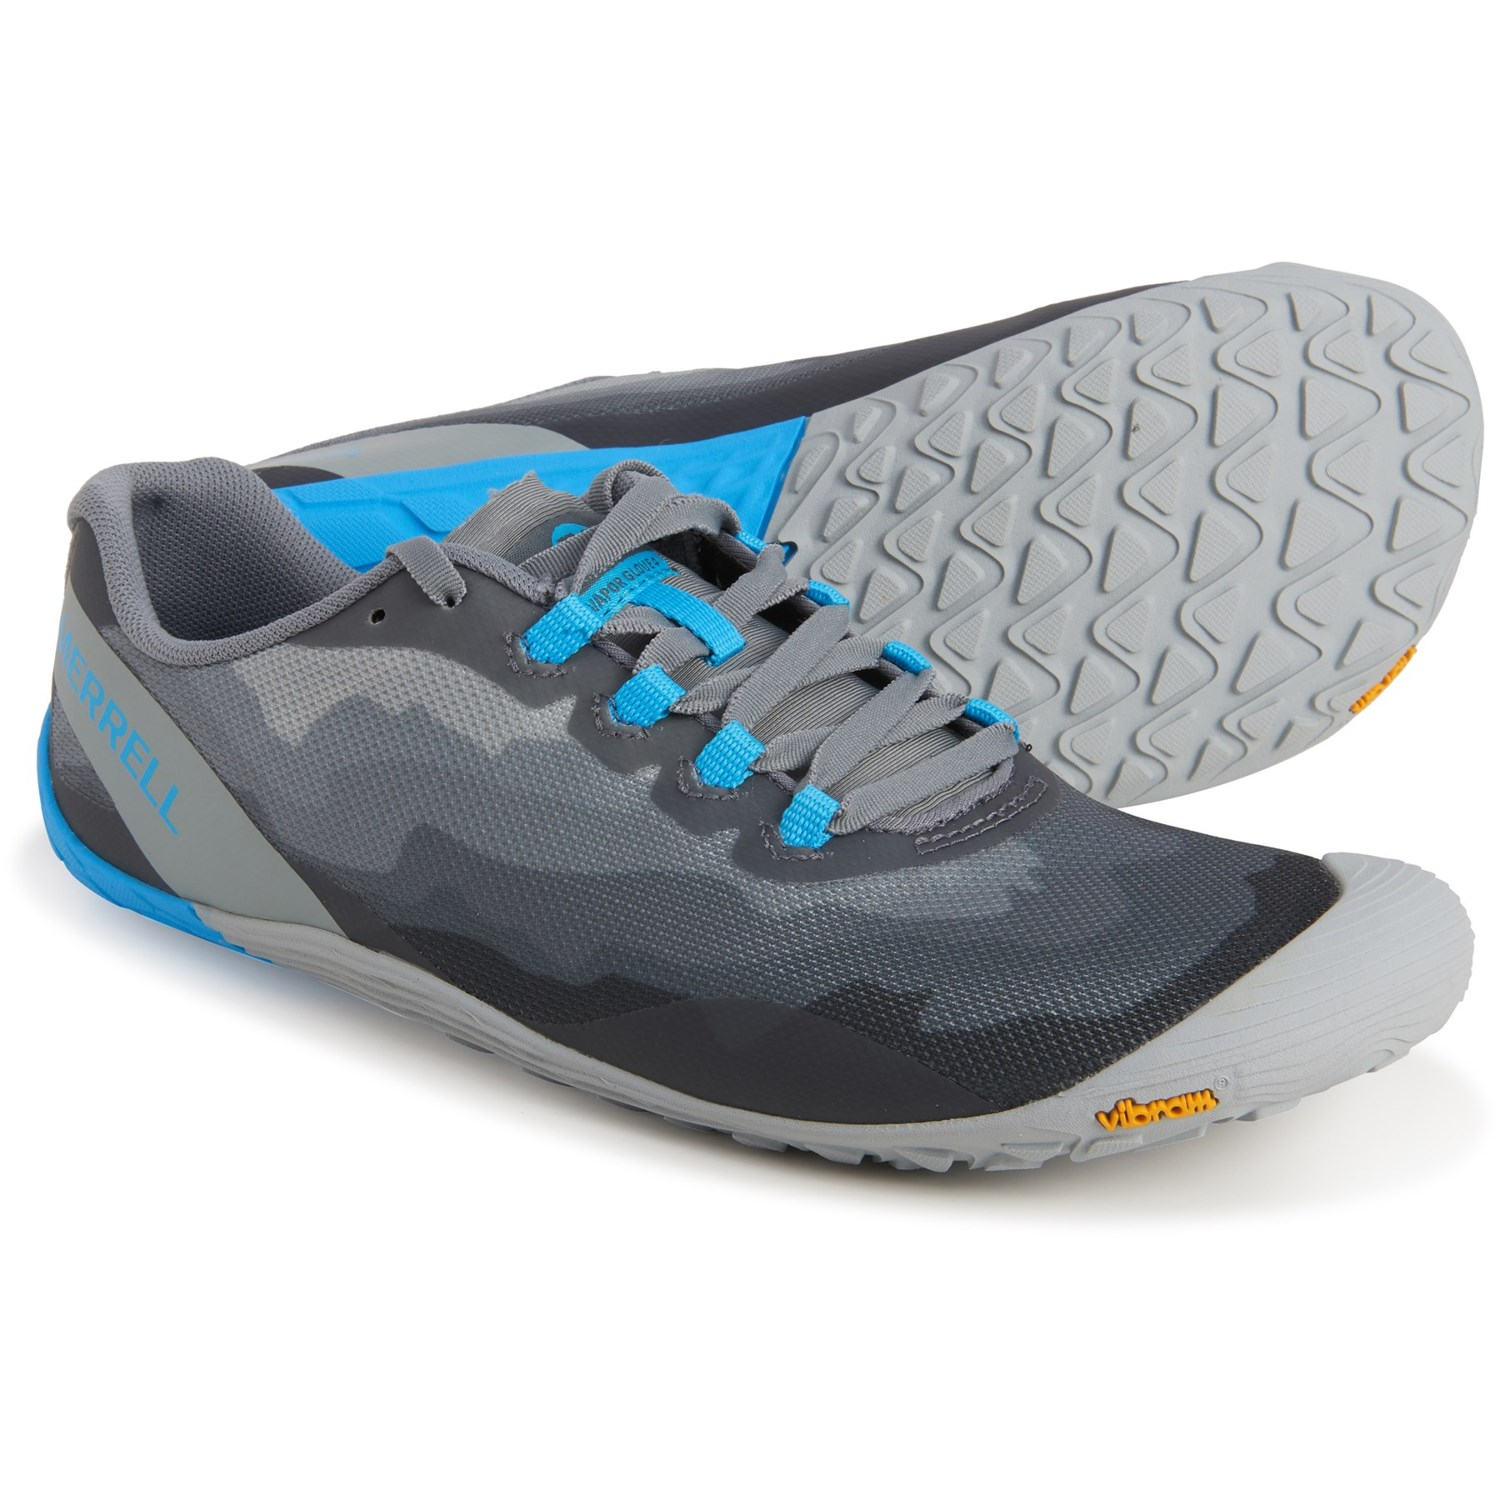 merrell vapor glove 4 trail shoe in